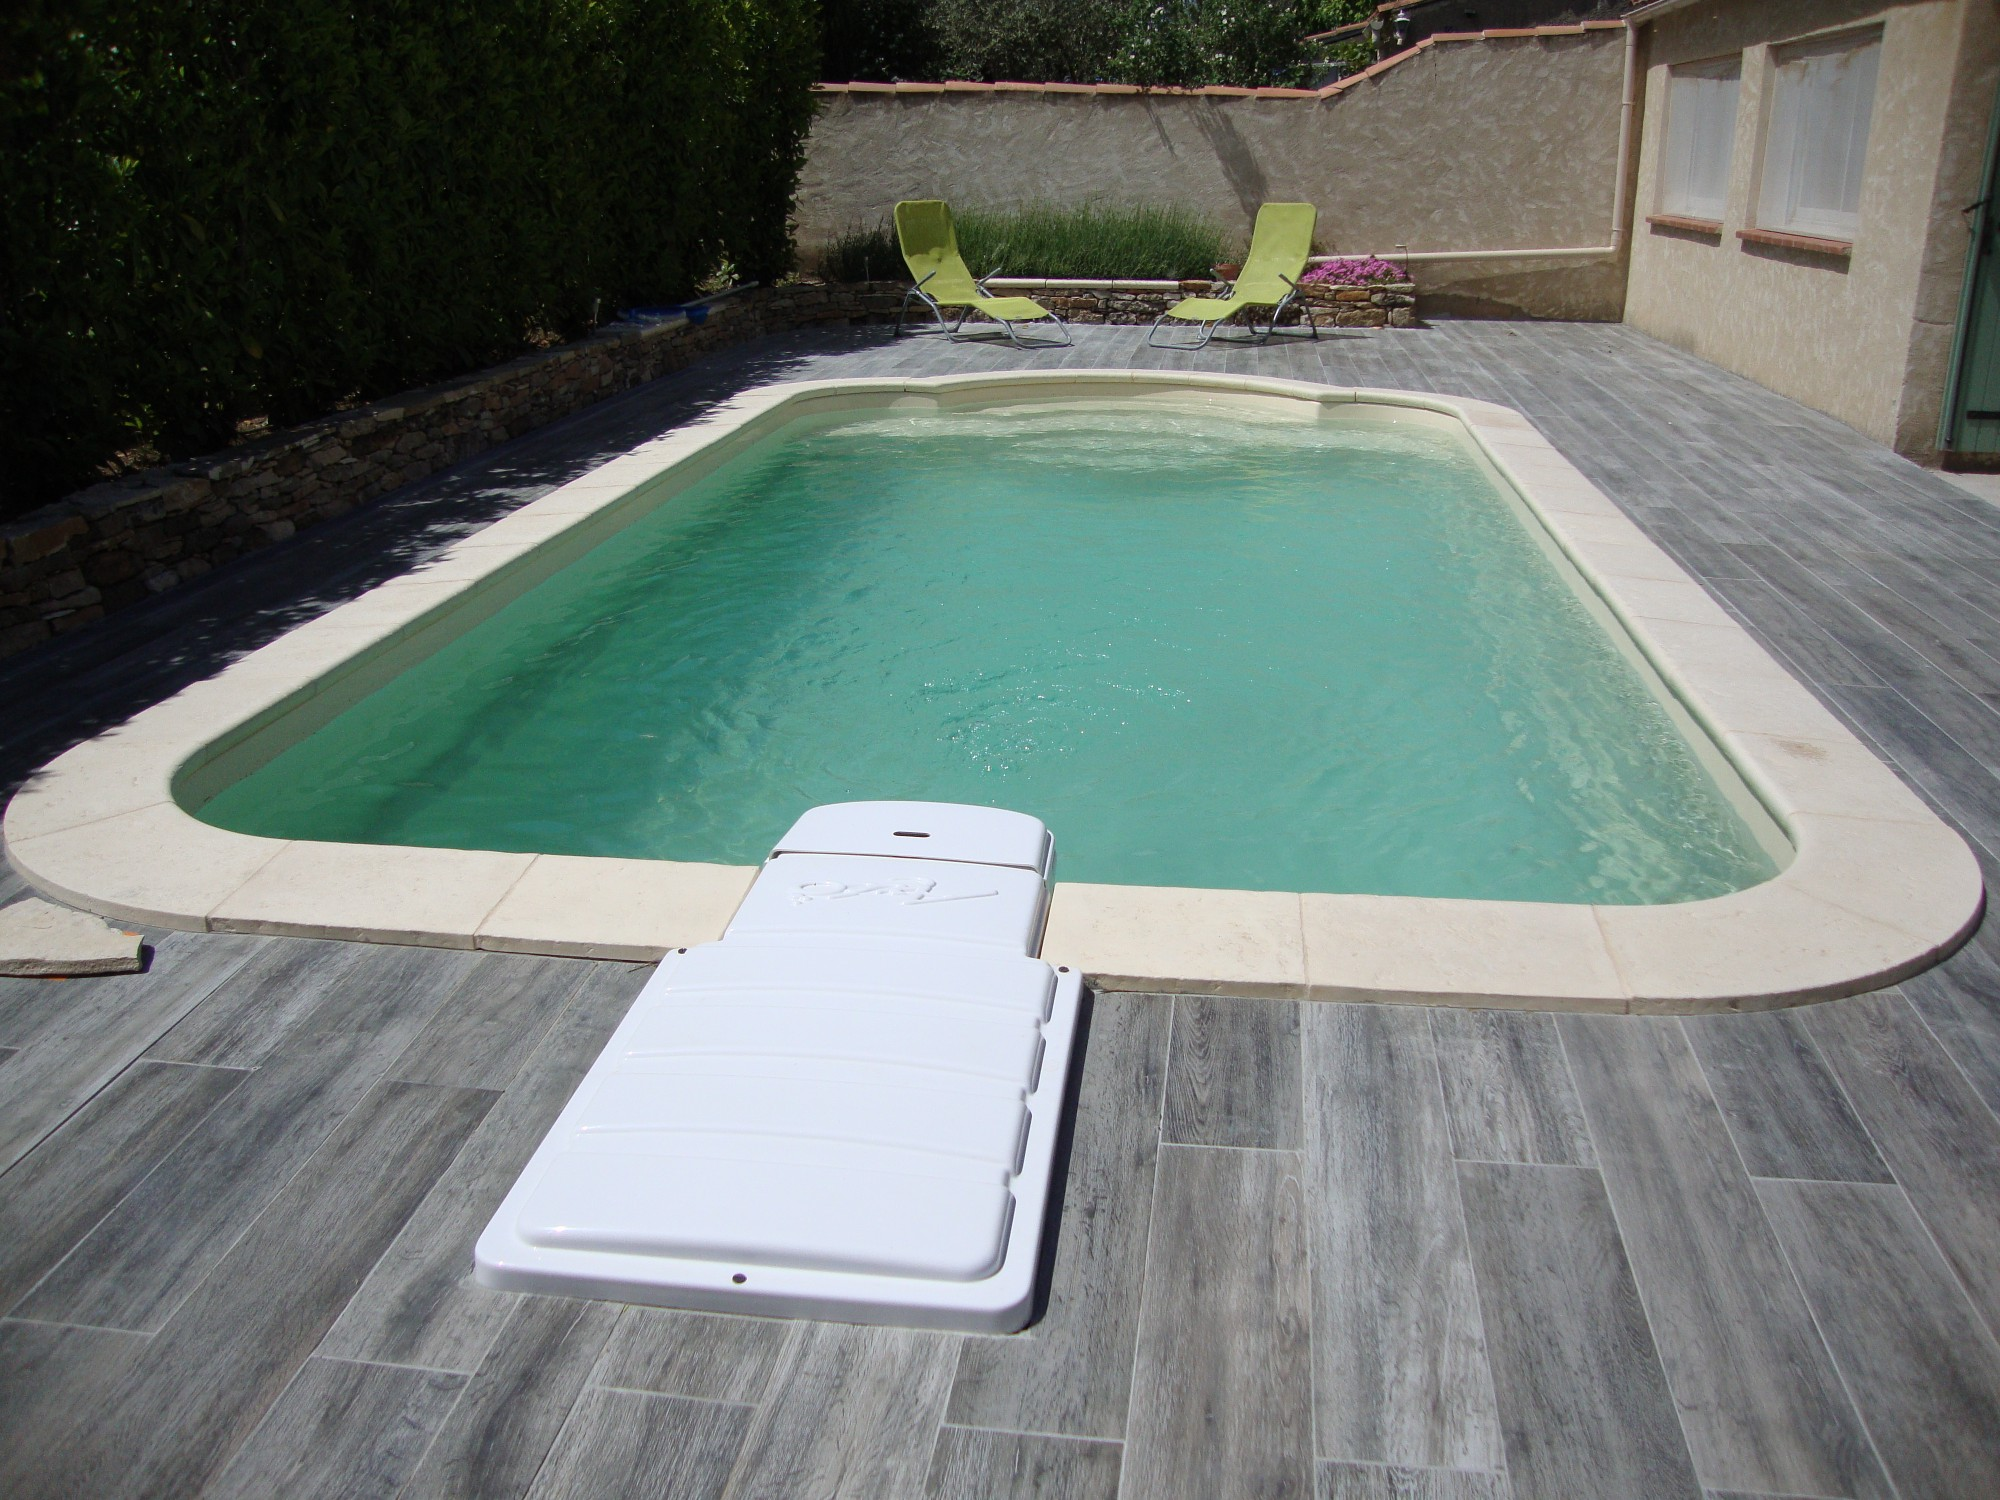 Vente et installation d 39 une piscine coque polyester 7x3 for Piscine 7x3